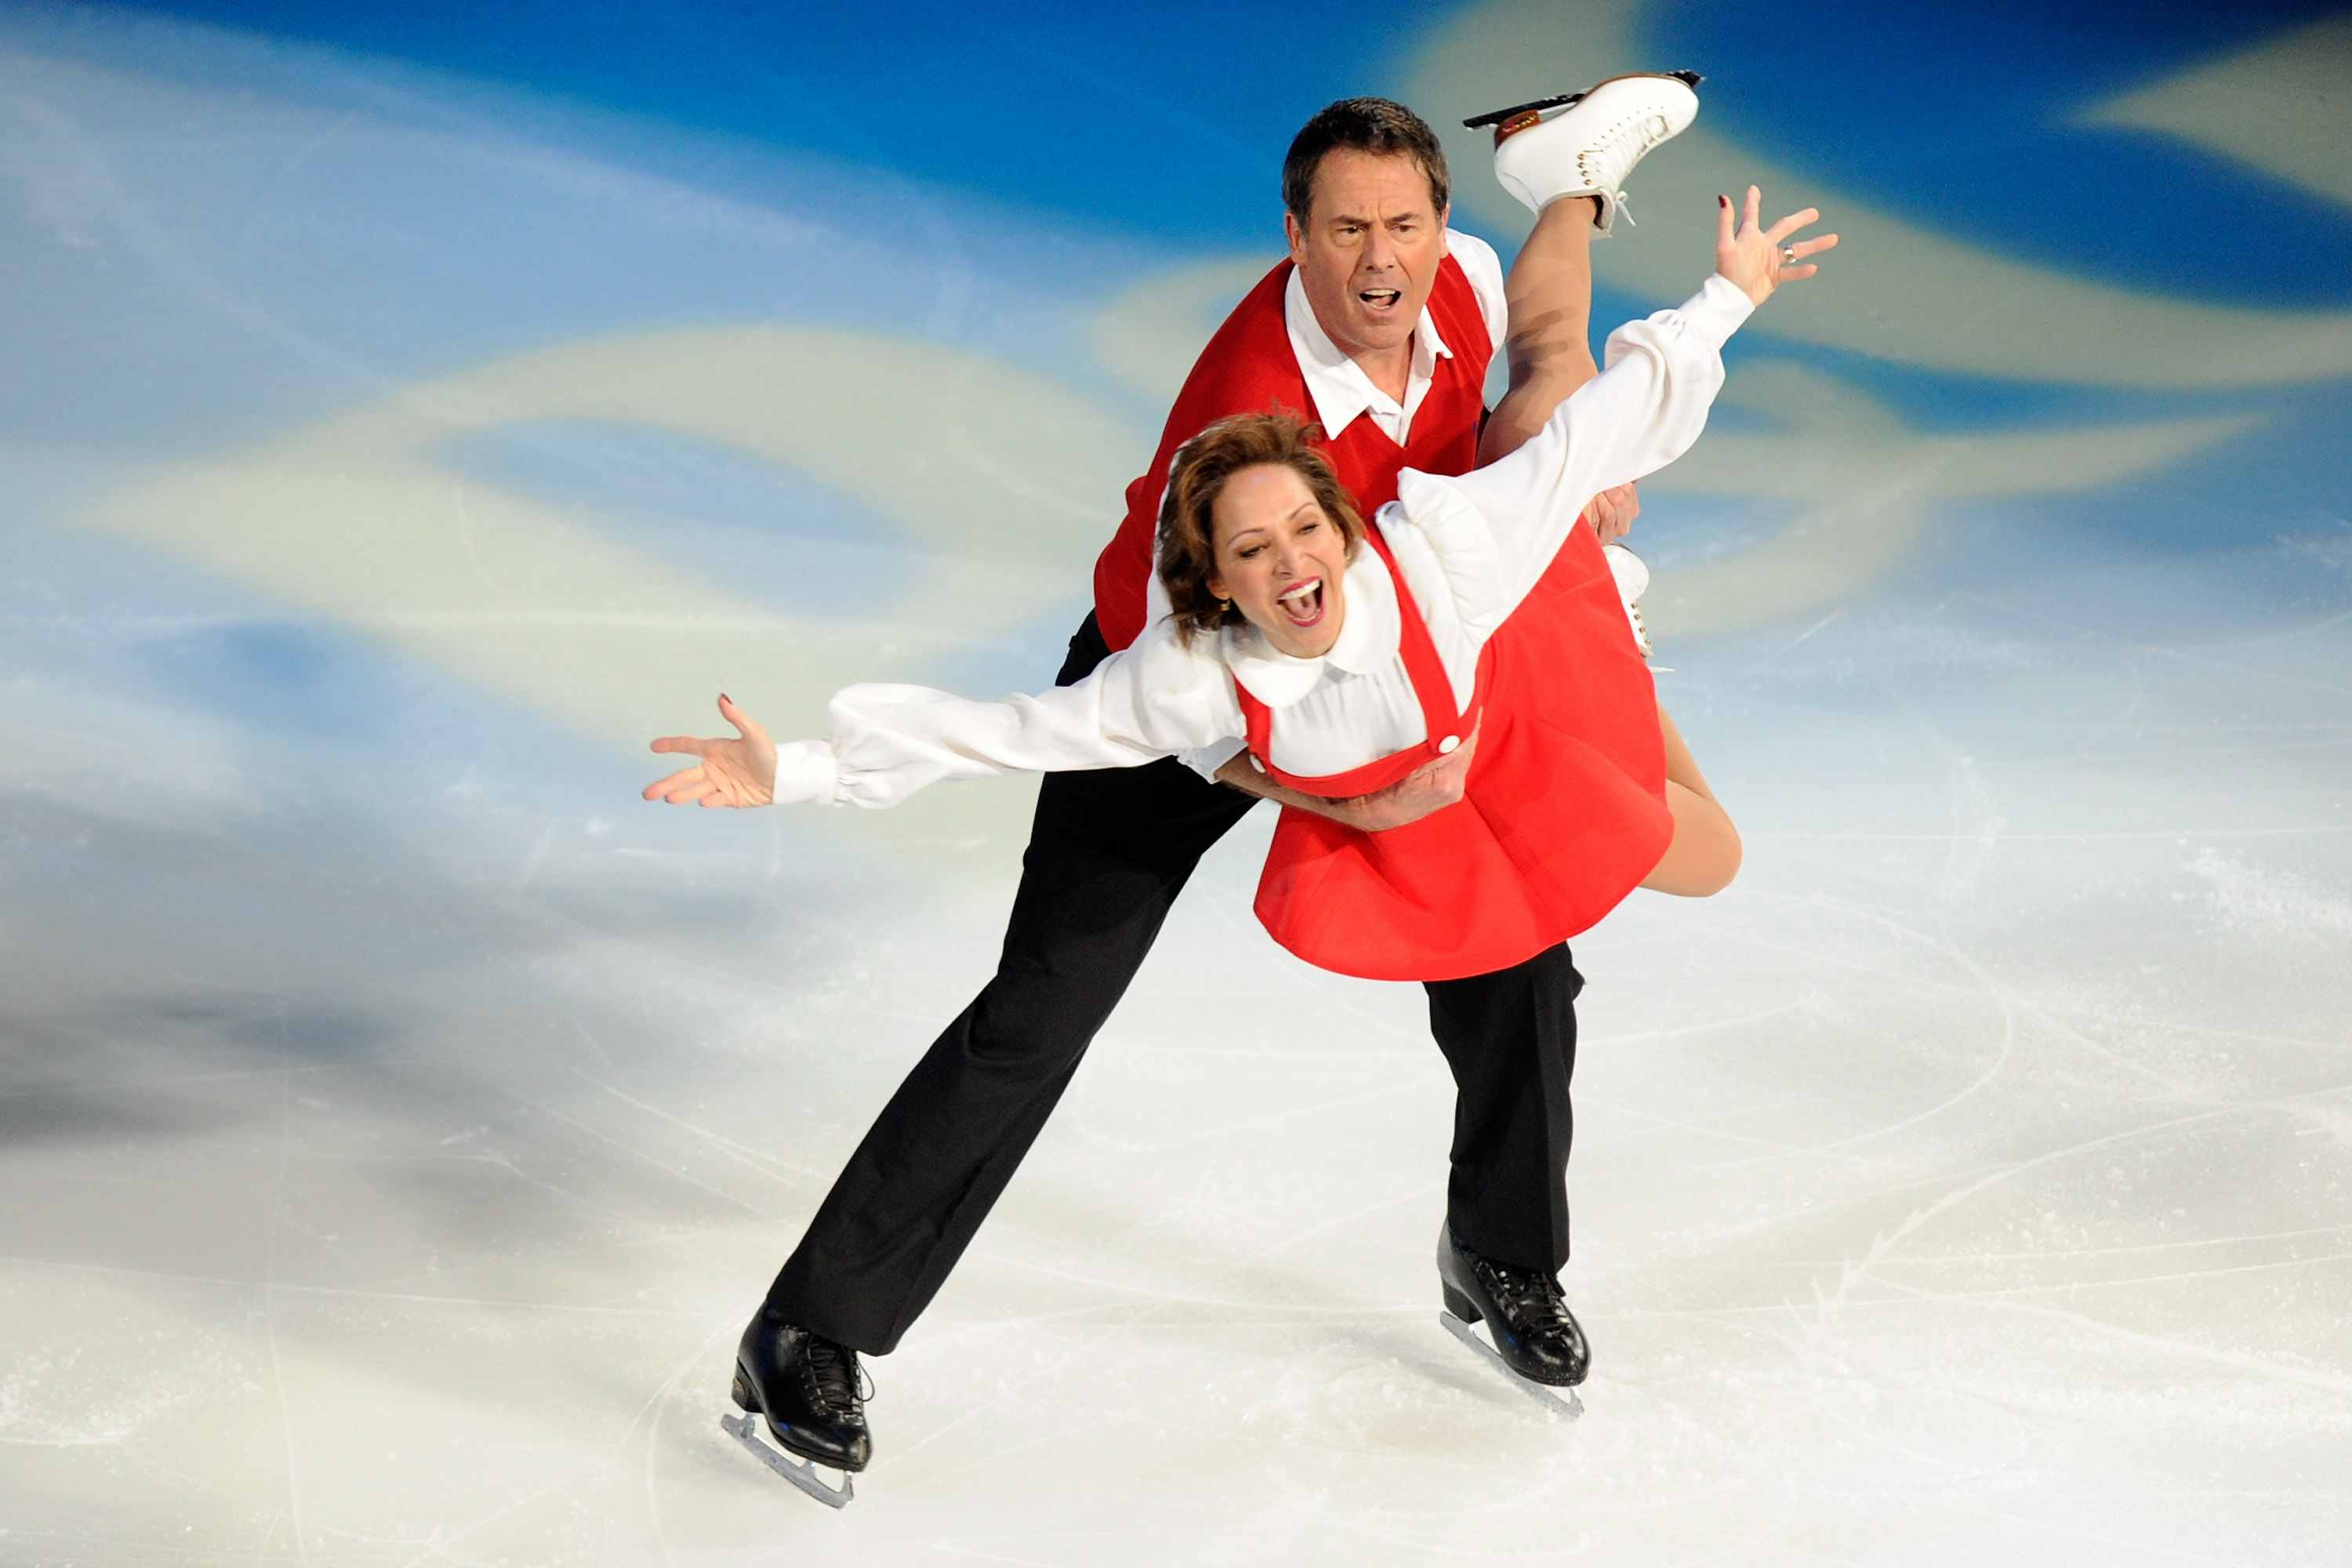 Kitty and Peter Carruthers skate together during the P&G & Wal-Mart 'Tribute to American Legends of the Ice'